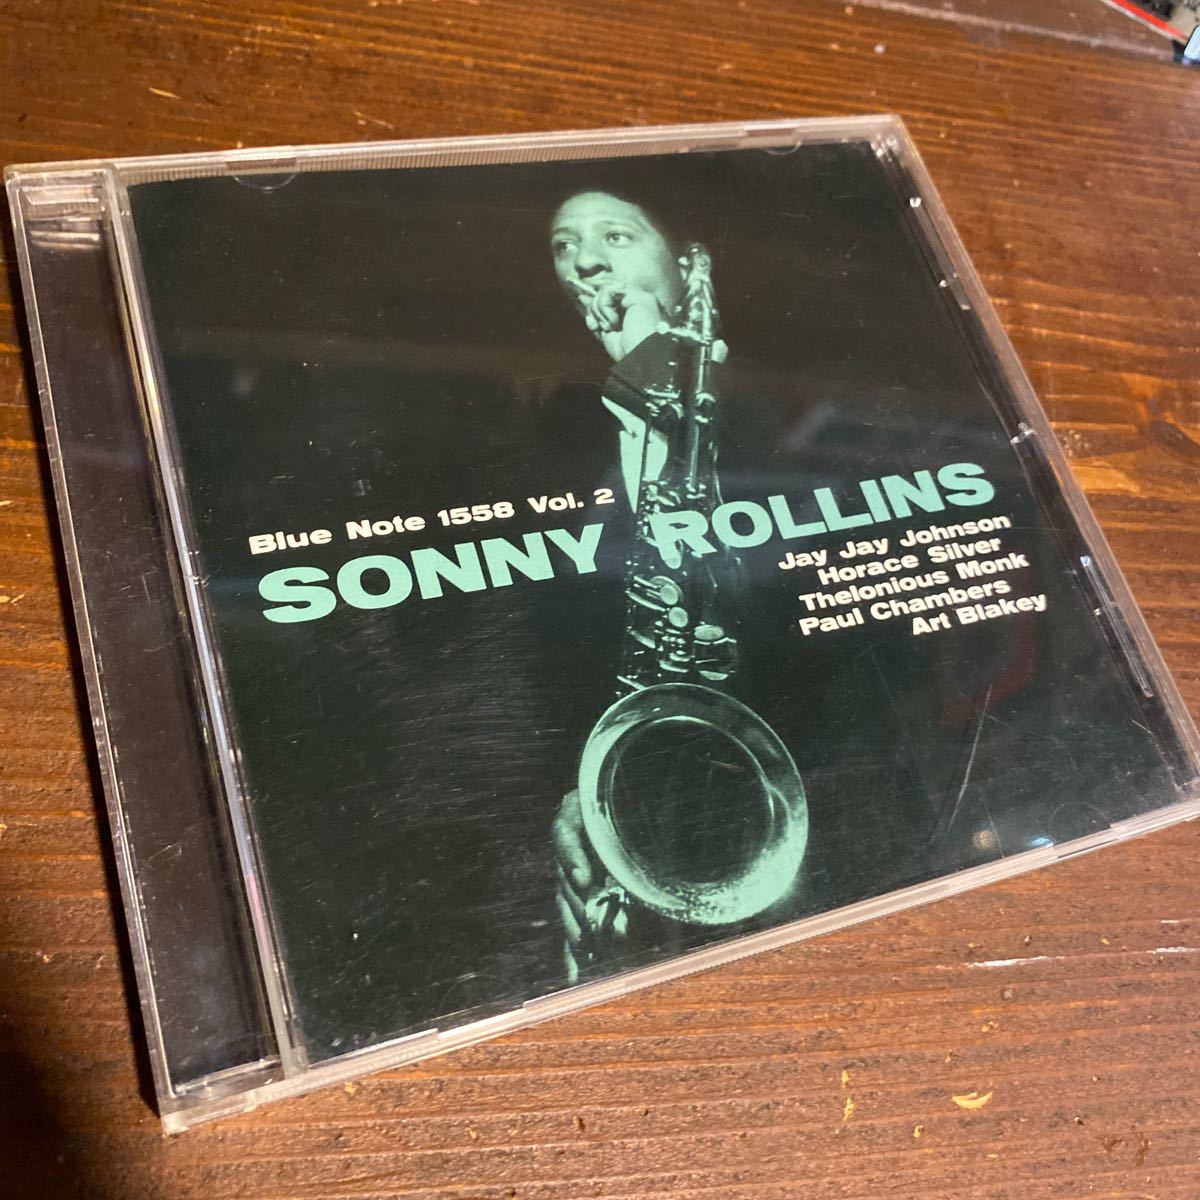 SONNY ROLLINS . vol.2 . BLUE NOTE 1558 輸入盤 _画像1